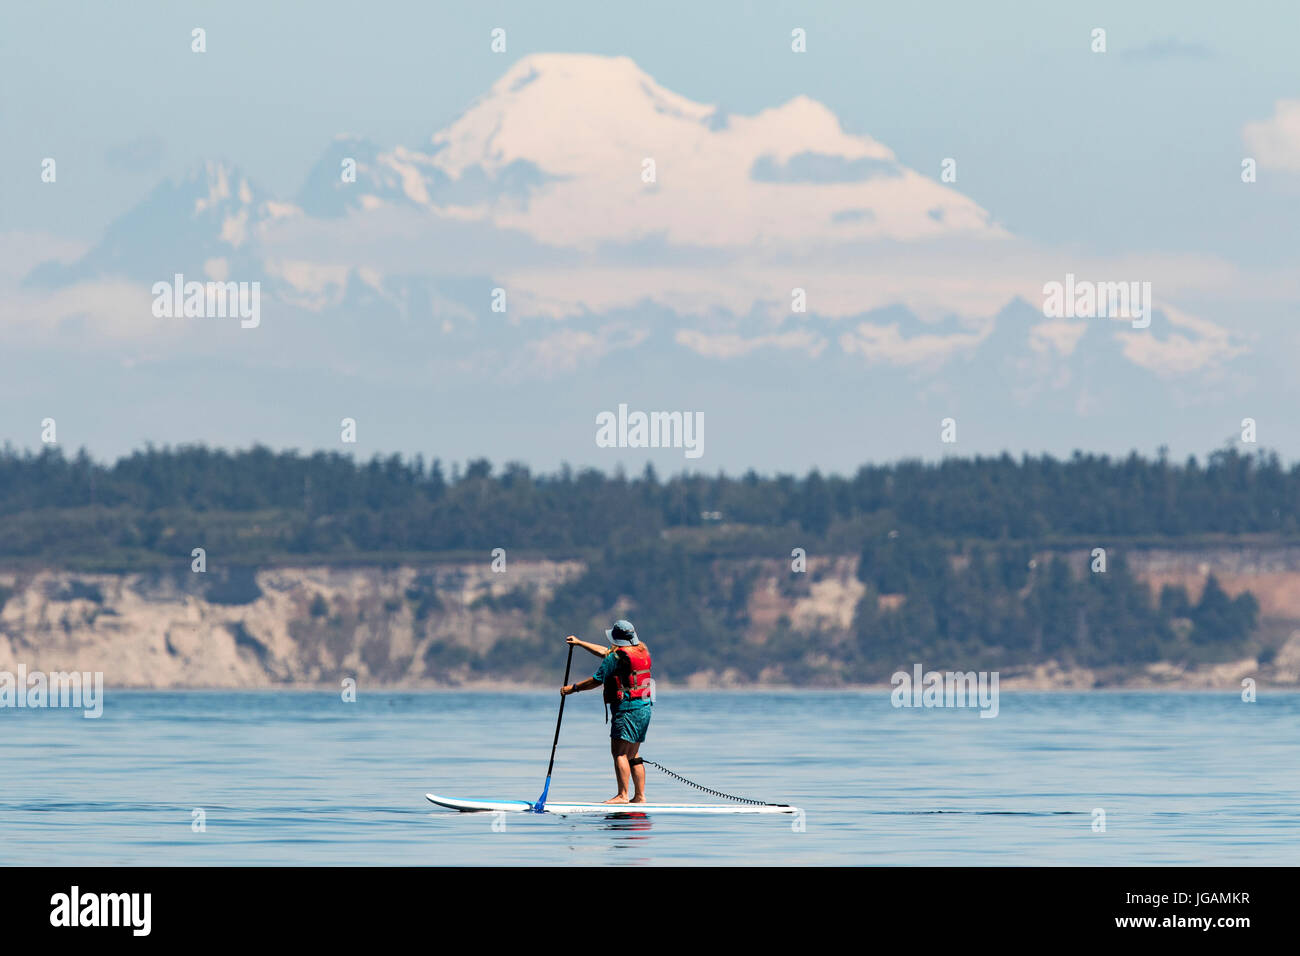 Stand Up Paddle imbarco sul Puget Sound con Mount Baker in background. Foto Stock